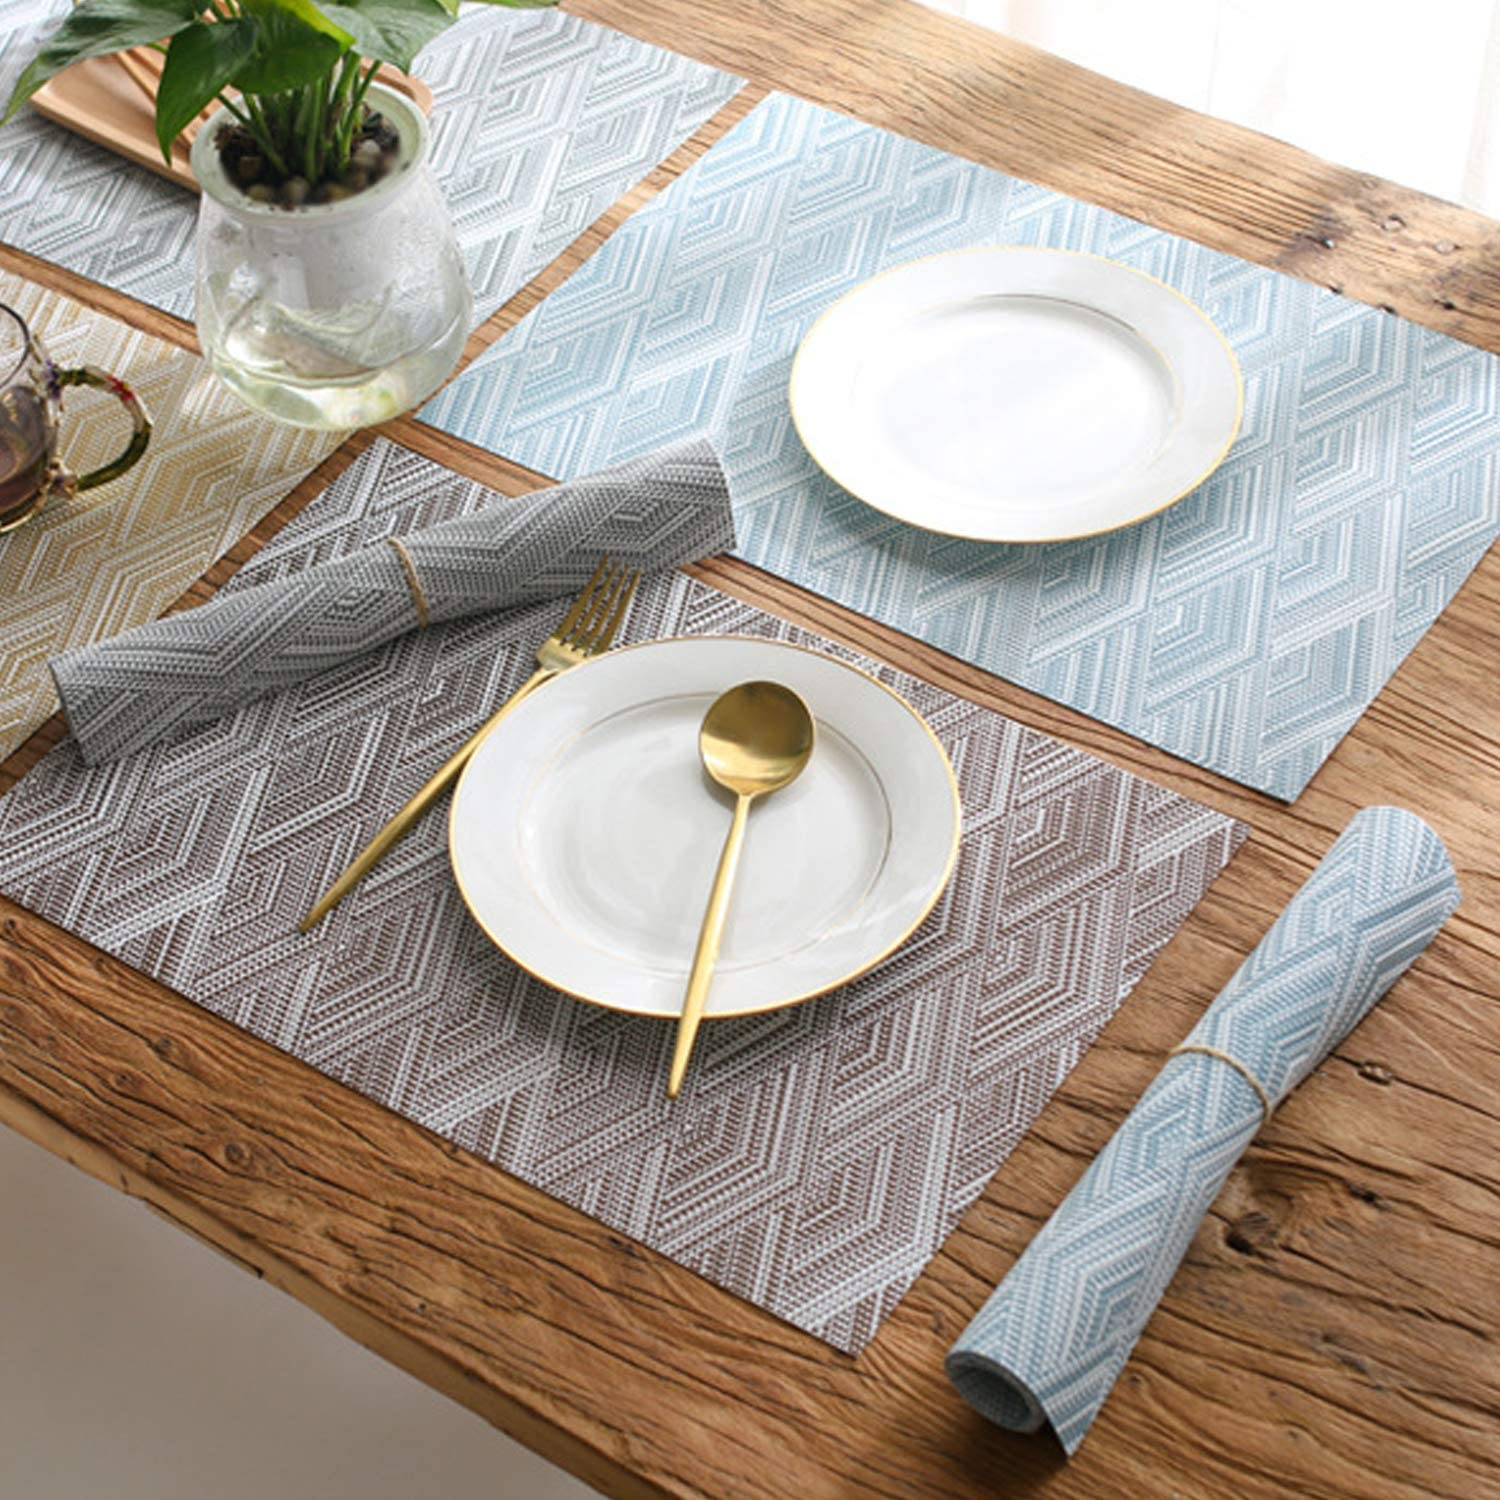 Fanciher 6PCS Placemats, 3D Wave Jacquard PVC Place mats Heat-Resistant Stain Resistant Anti-Skid Table Durable Cross Weave Mats for Dining Table (Blue): Home & Kitchen